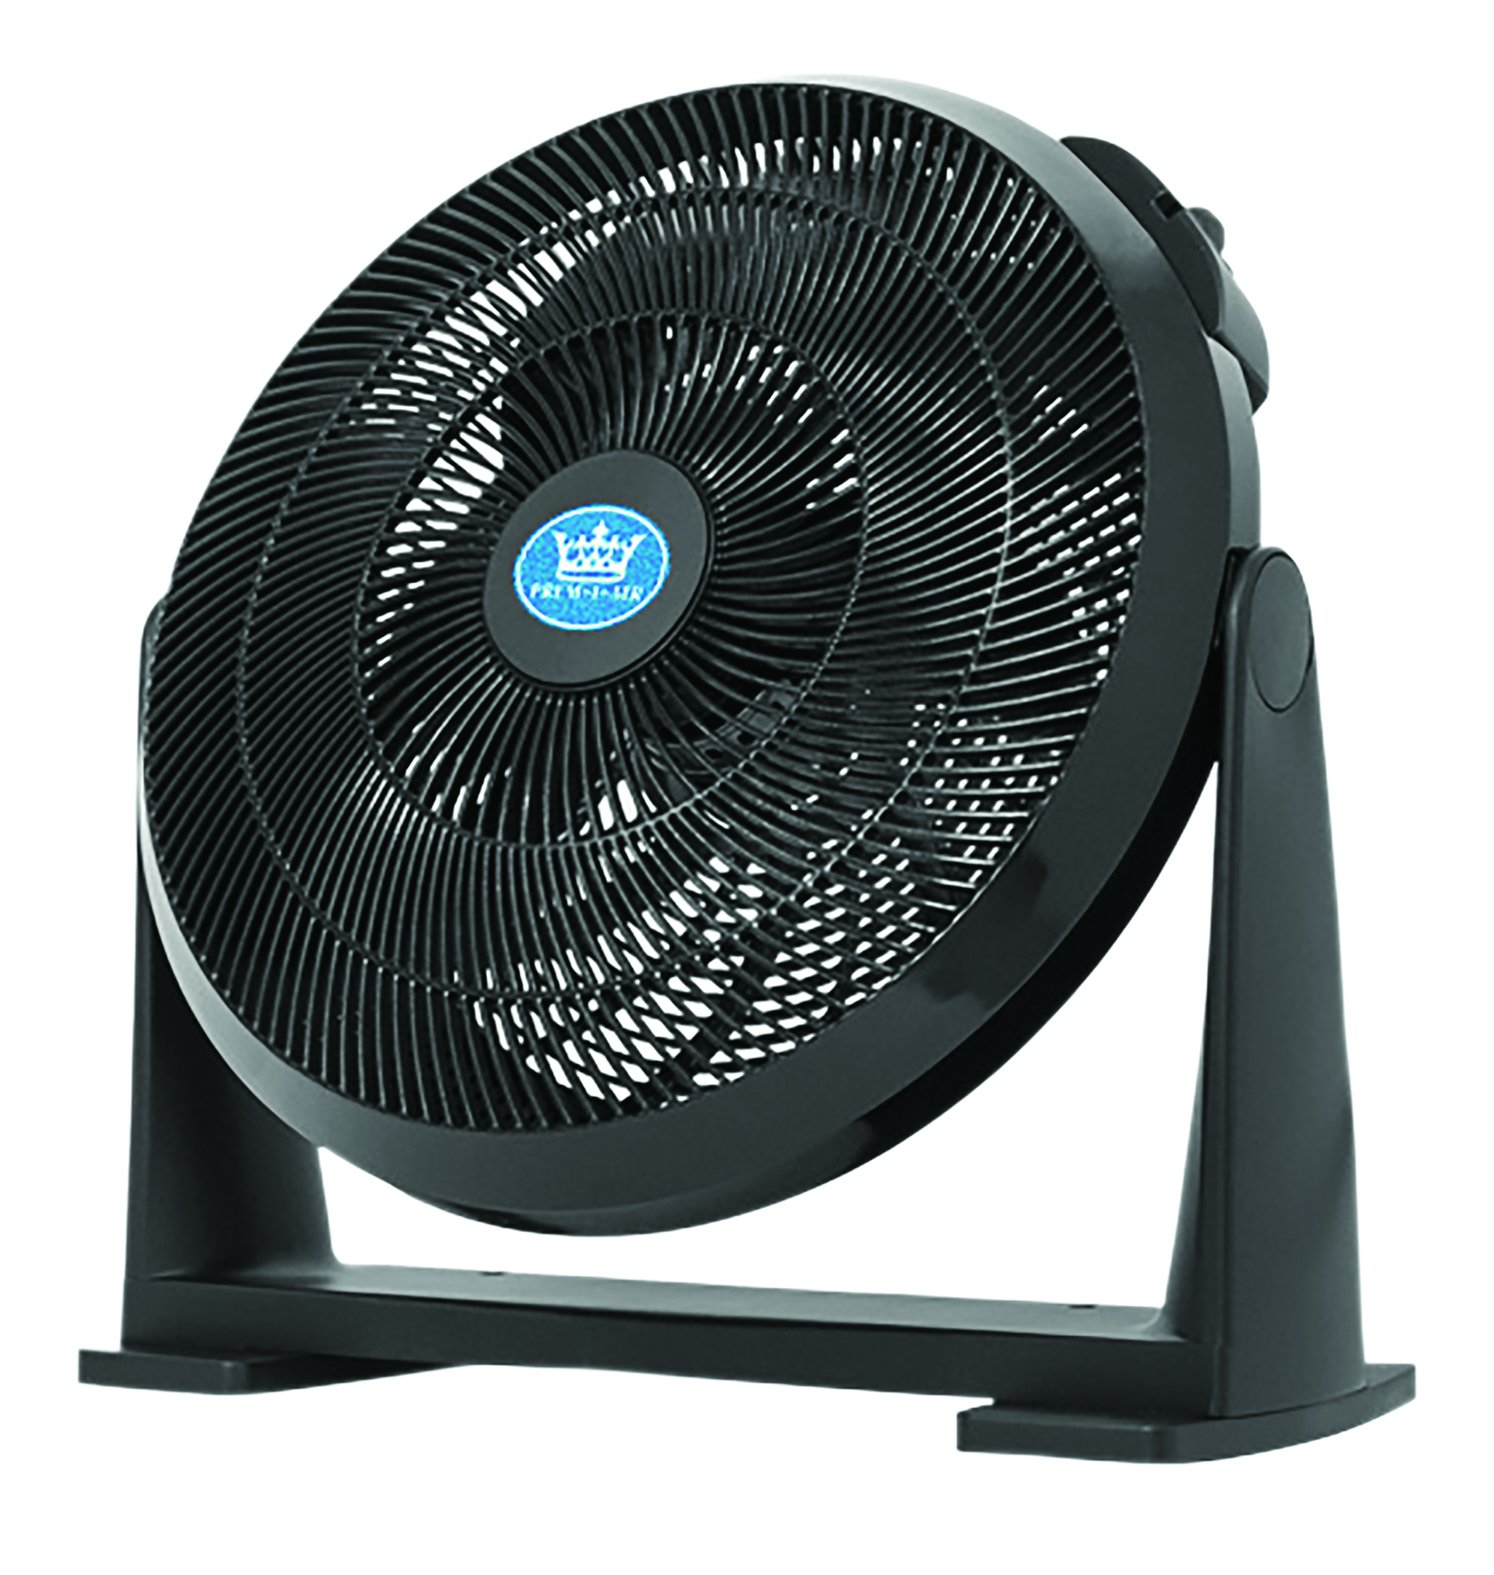 Prem-i-air High Velocity Air Circulator – Floor or Wall Mountable – 40cm